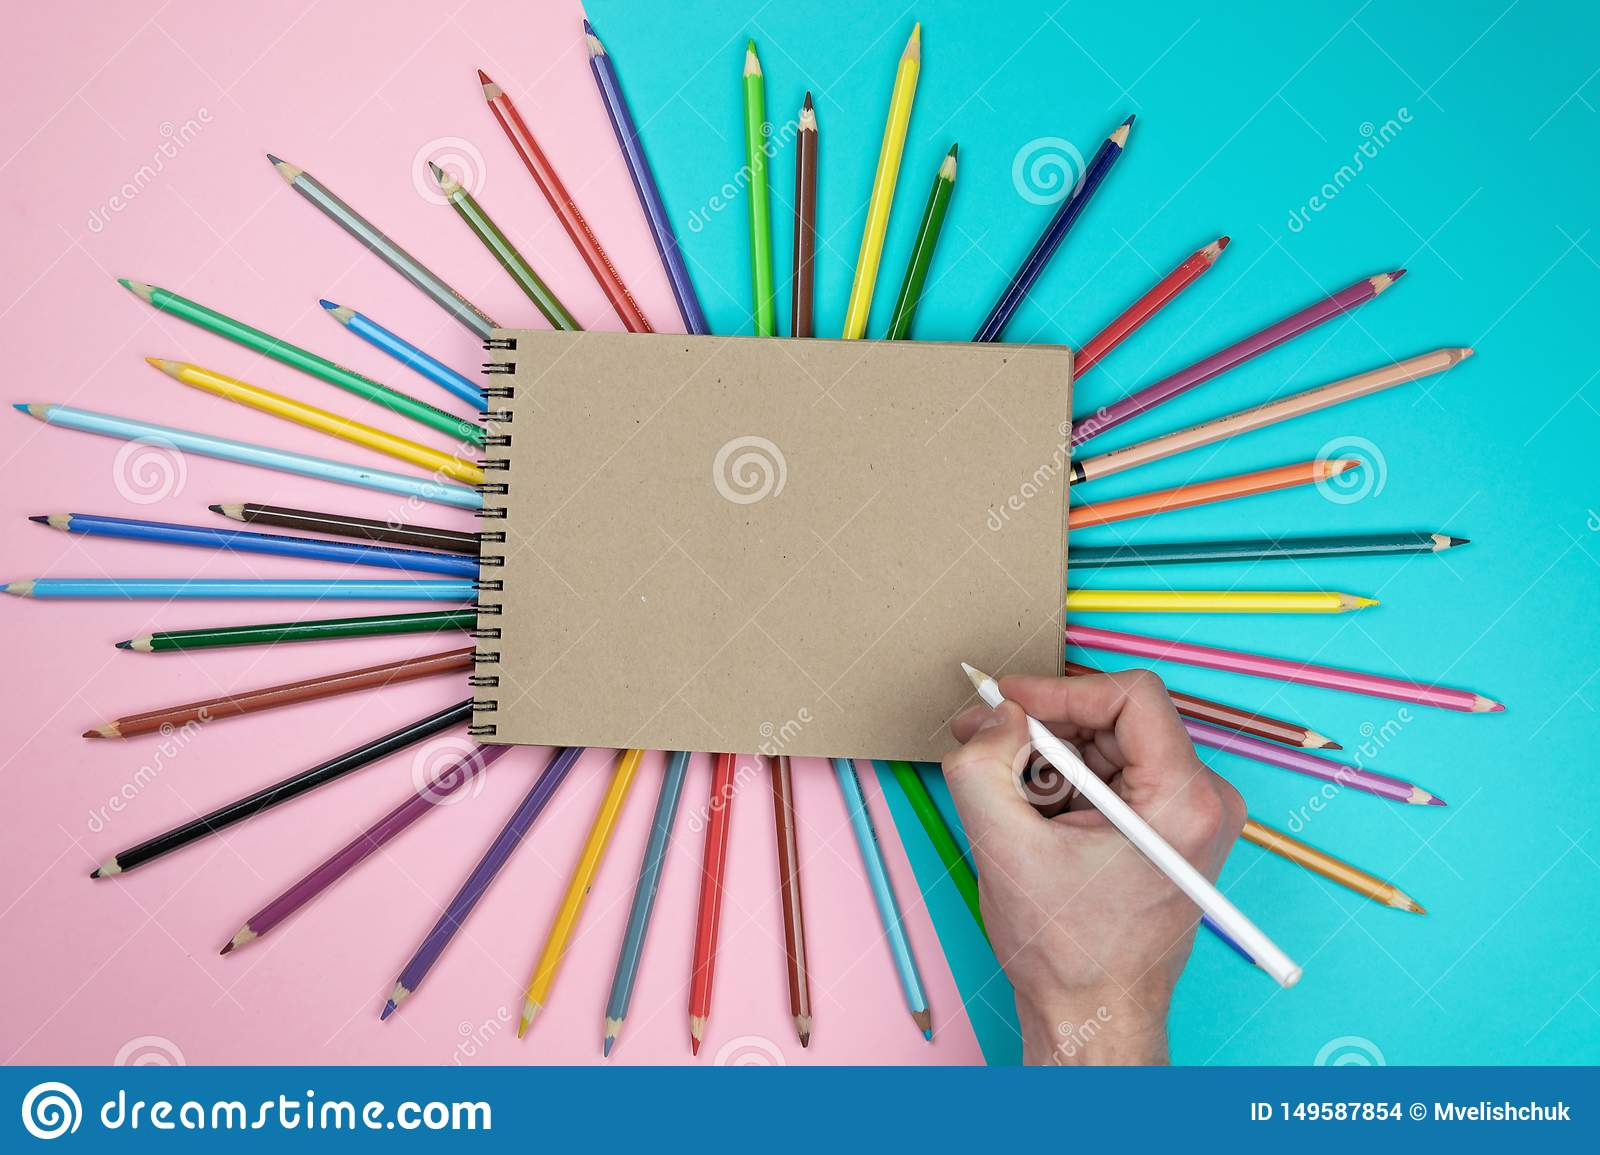 Male hand drawing, blank paper and colorful pencils. Branding stationery mockup scene, blank objects for placing your design.